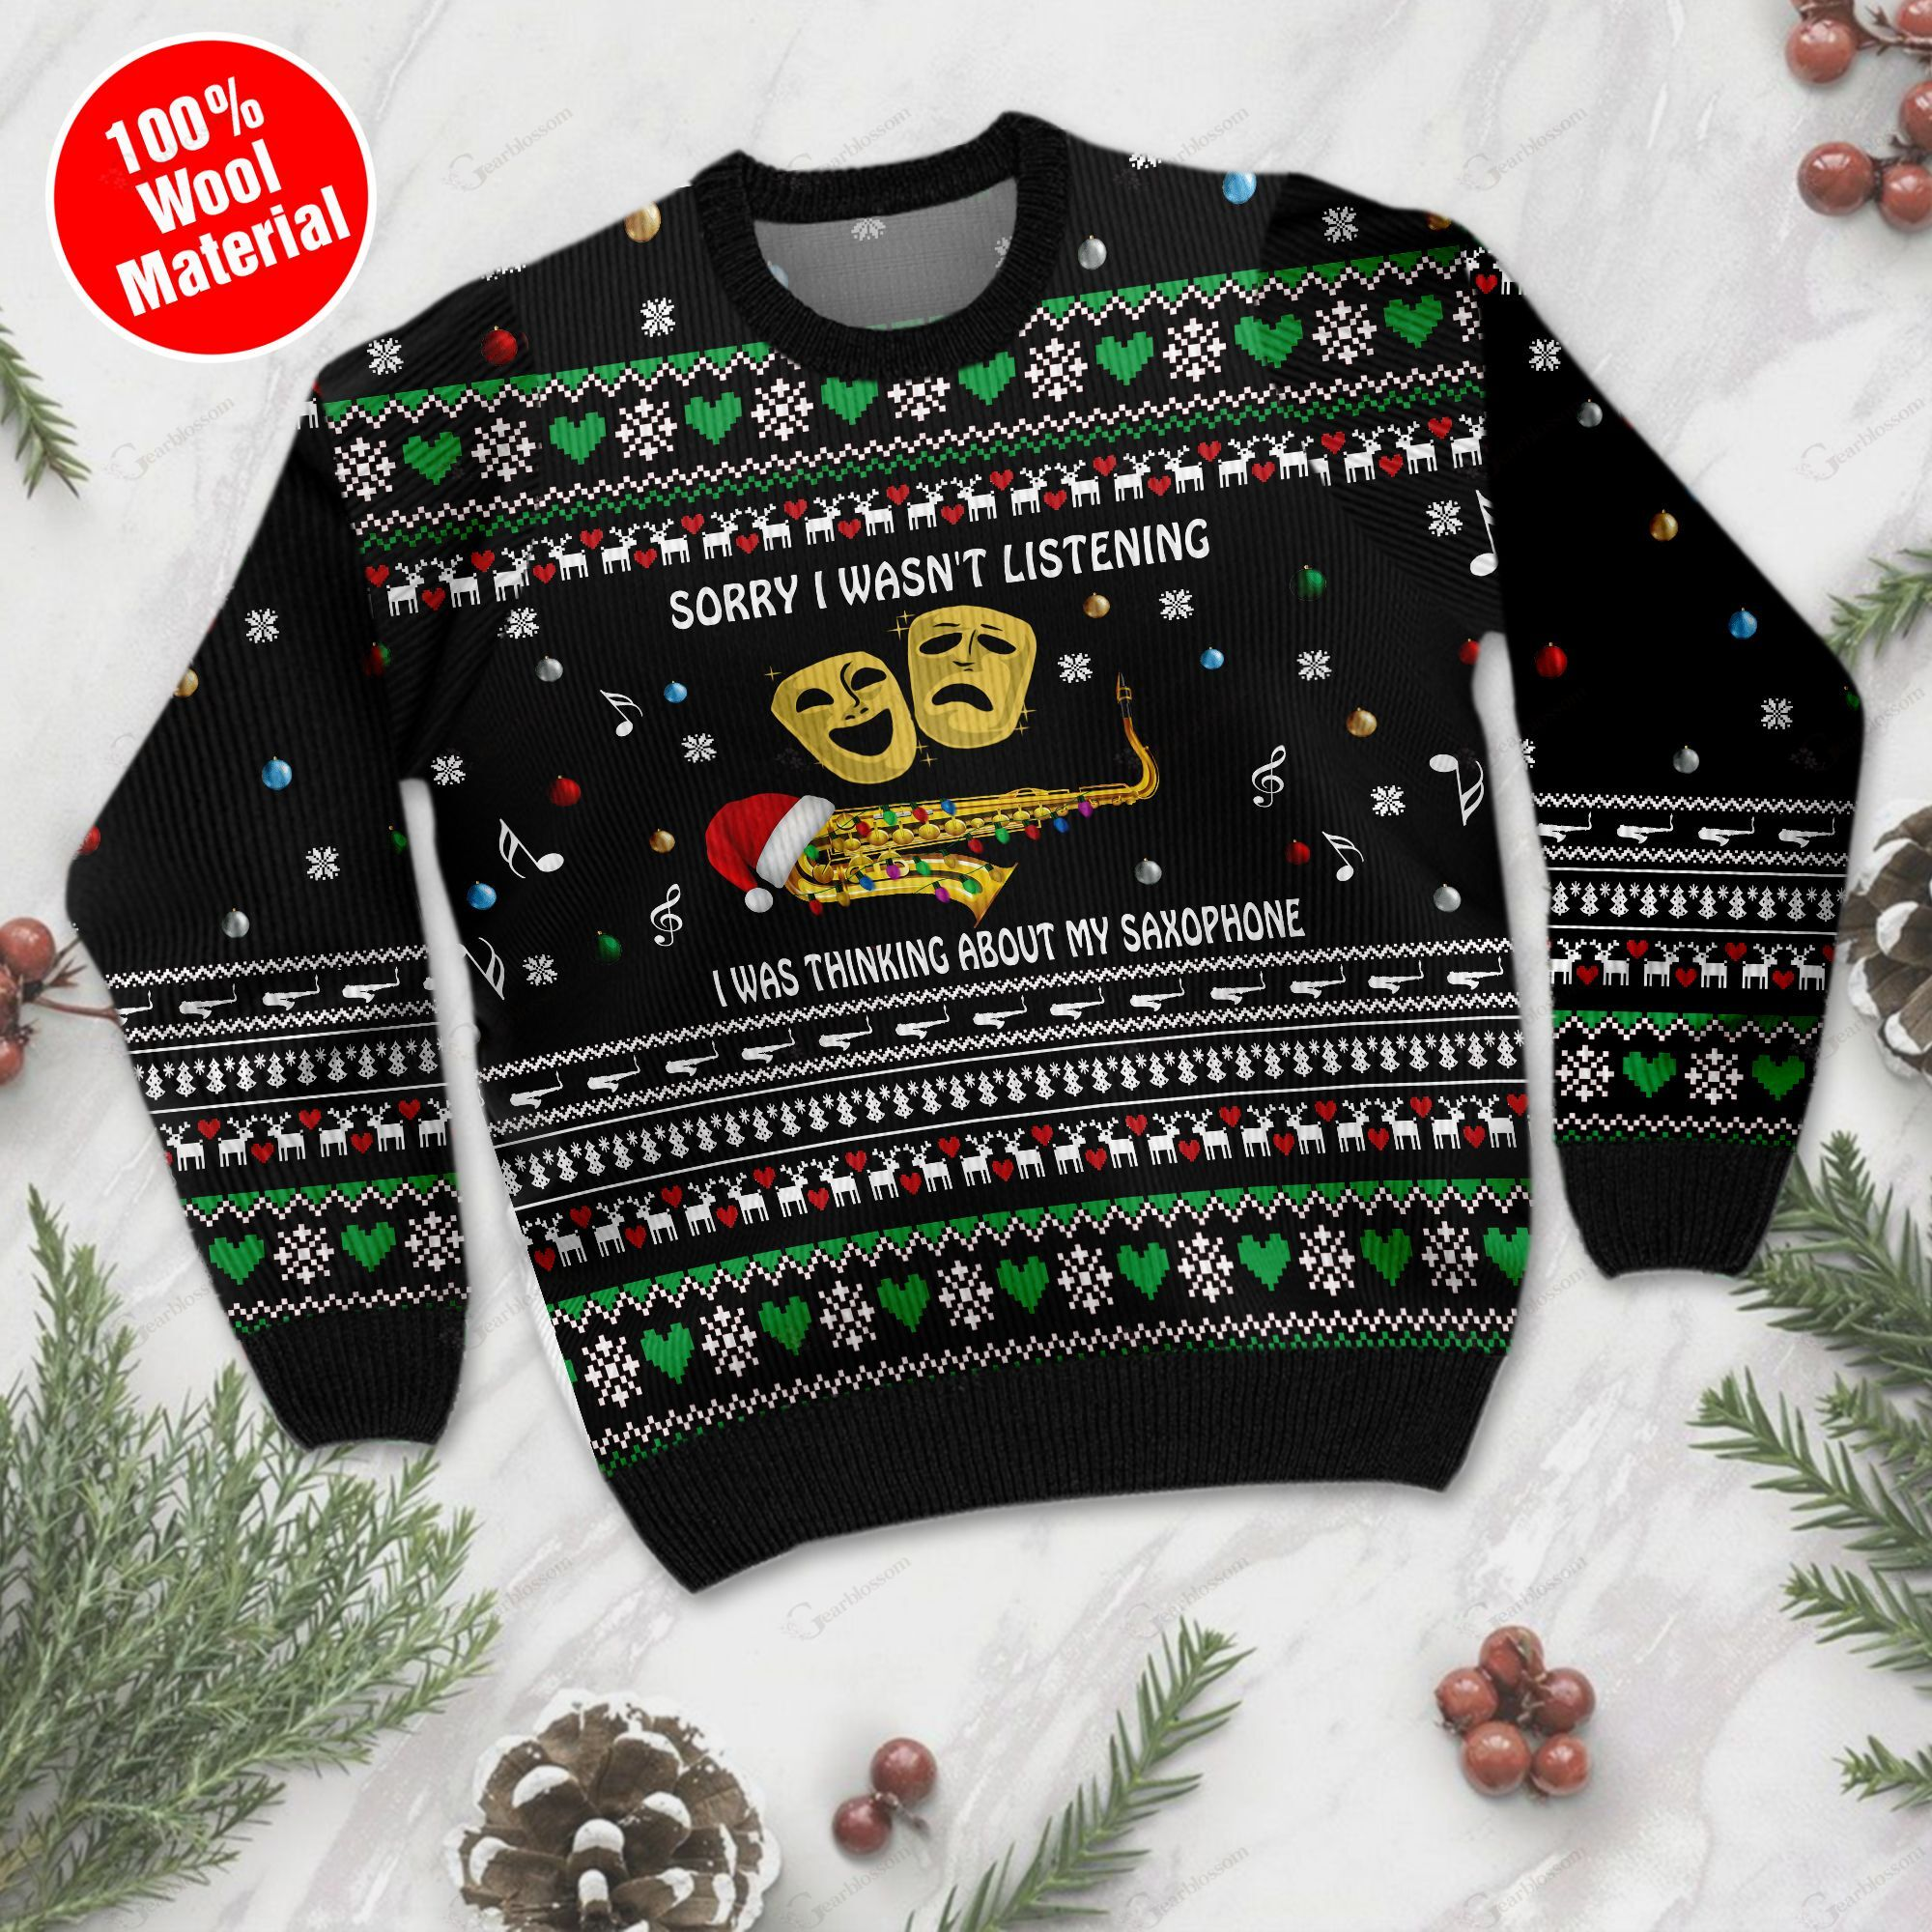 Sorry I Wasn't Listening I Was Thinking About My Saxophone Christmas Saxophone Ugly Wool Sweater For Saxophone Lovers TPLH